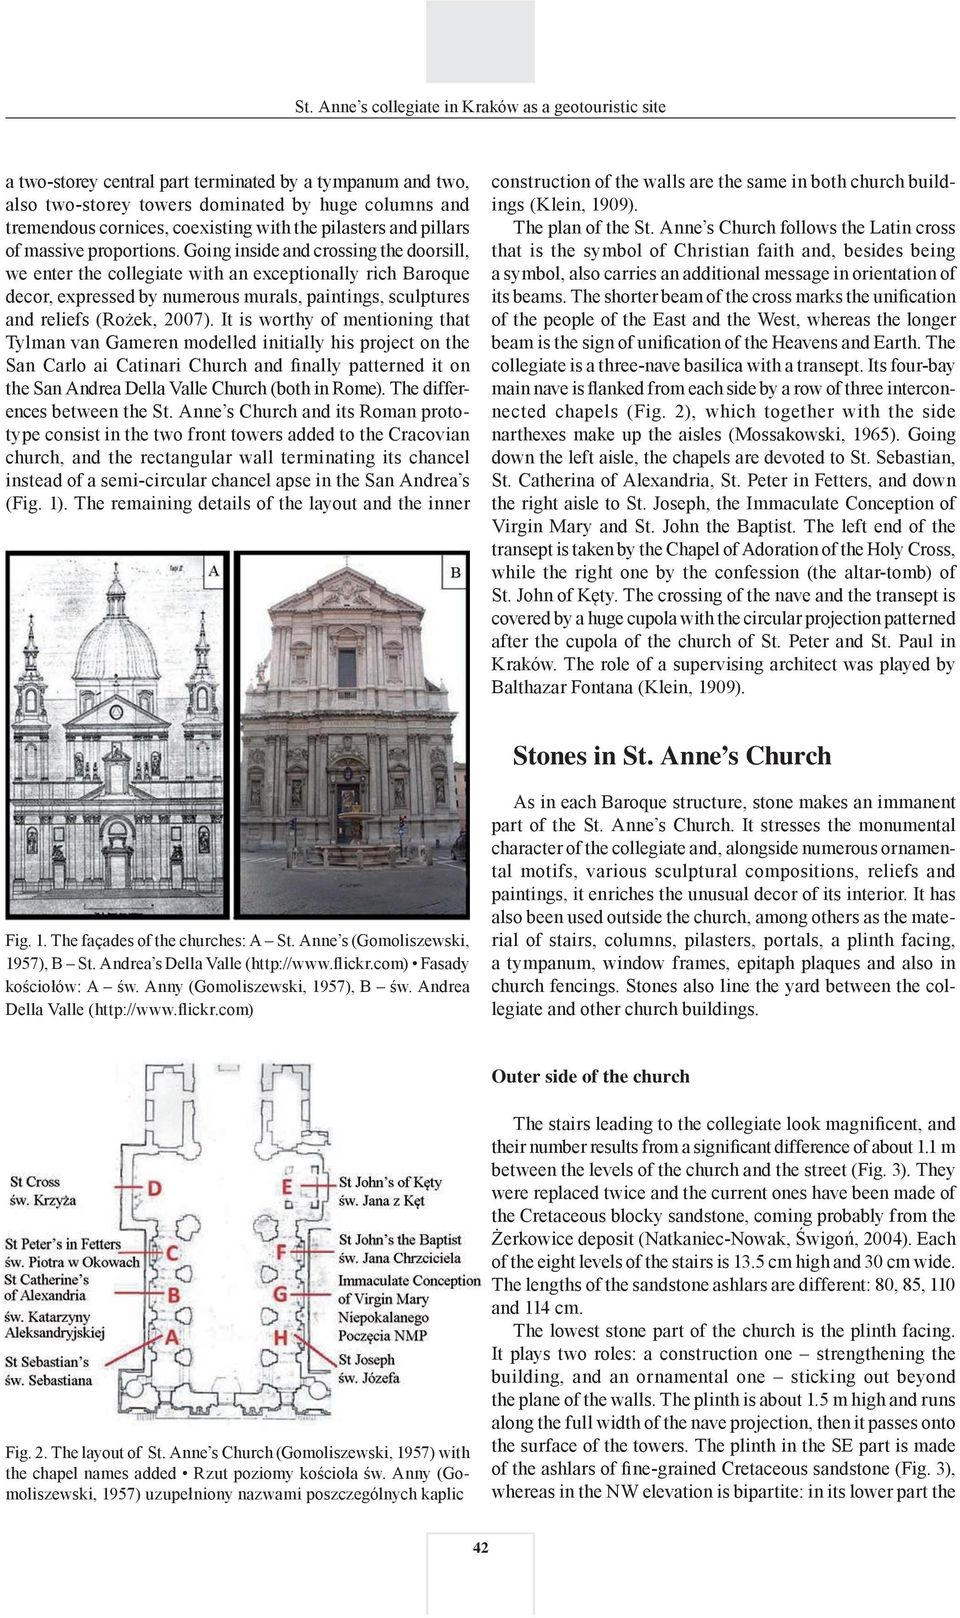 It is worthy of mentioning that Tylman van Gameren modelled initially his project on the San Carlo ai Catinari Church and finally patterned it on the San Andrea Della Valle Church (both in Rome).